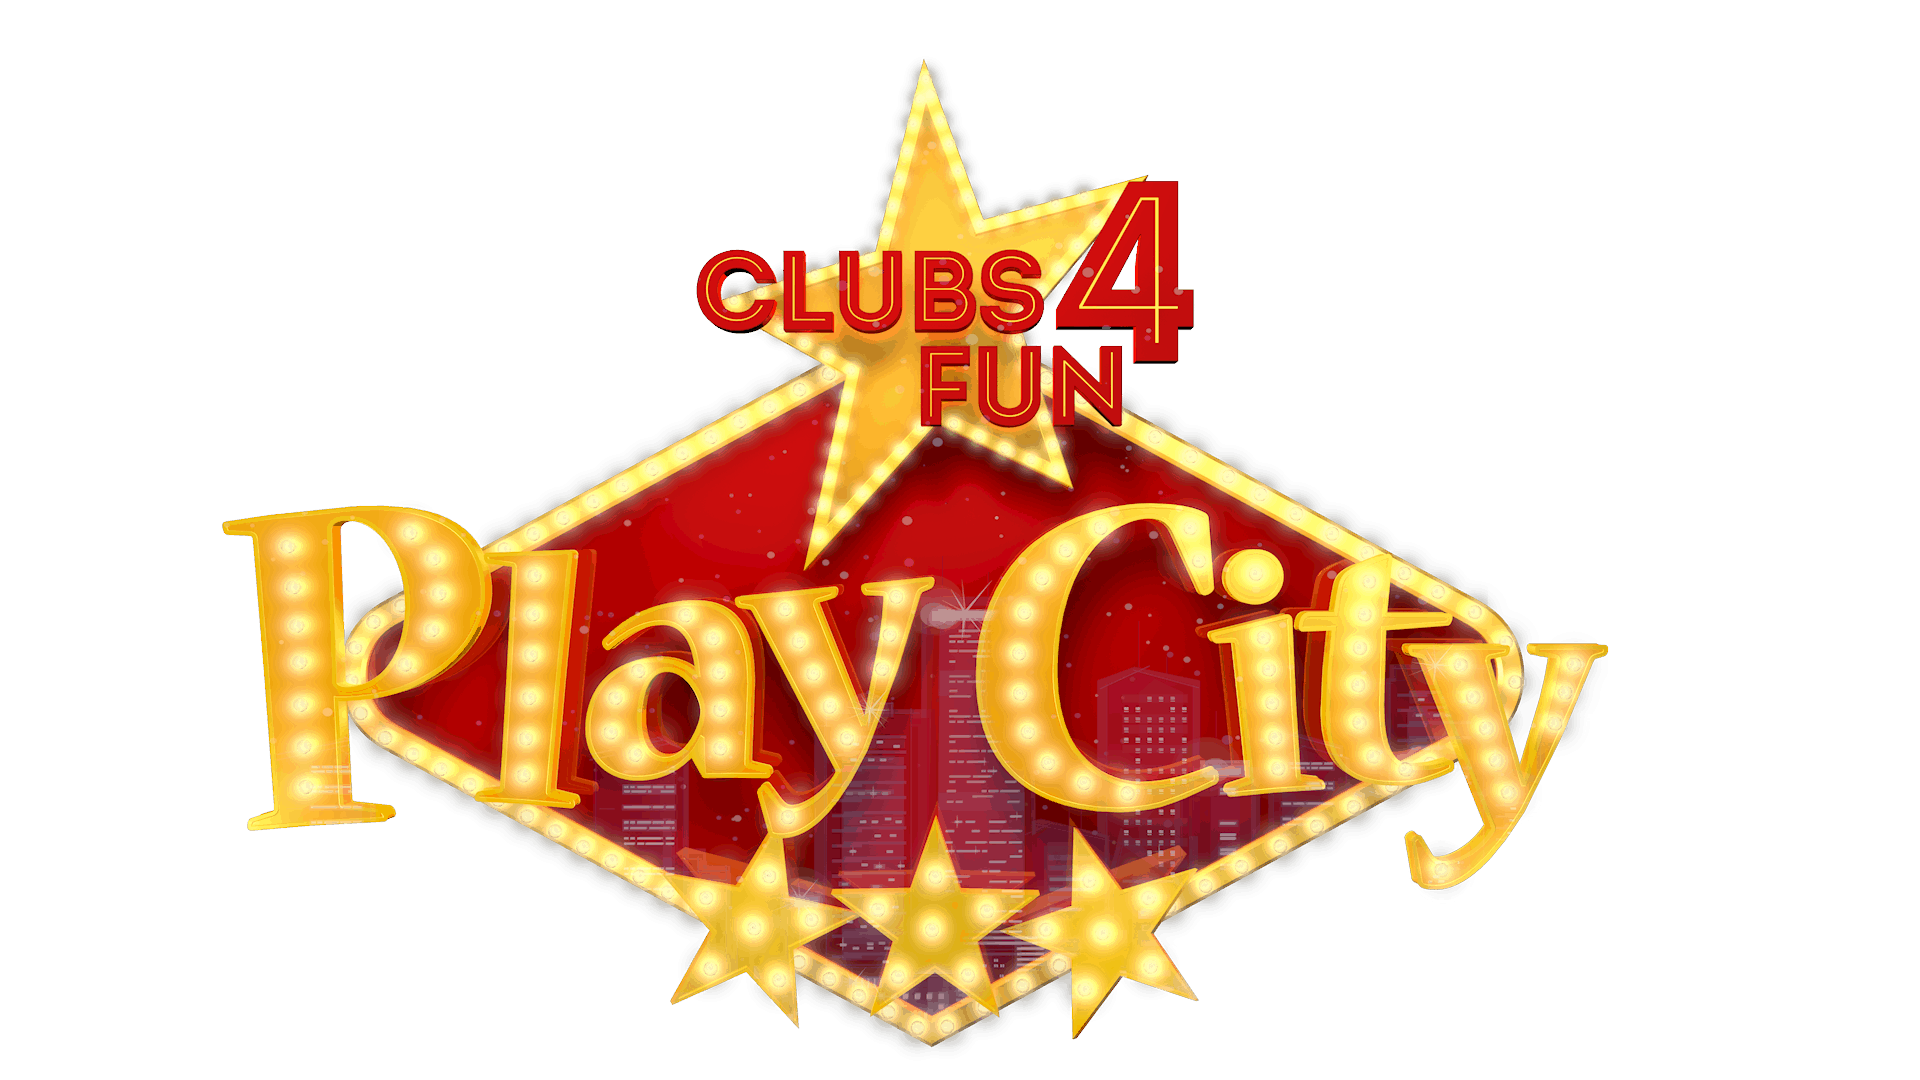 Clubs 4 Fun Play City